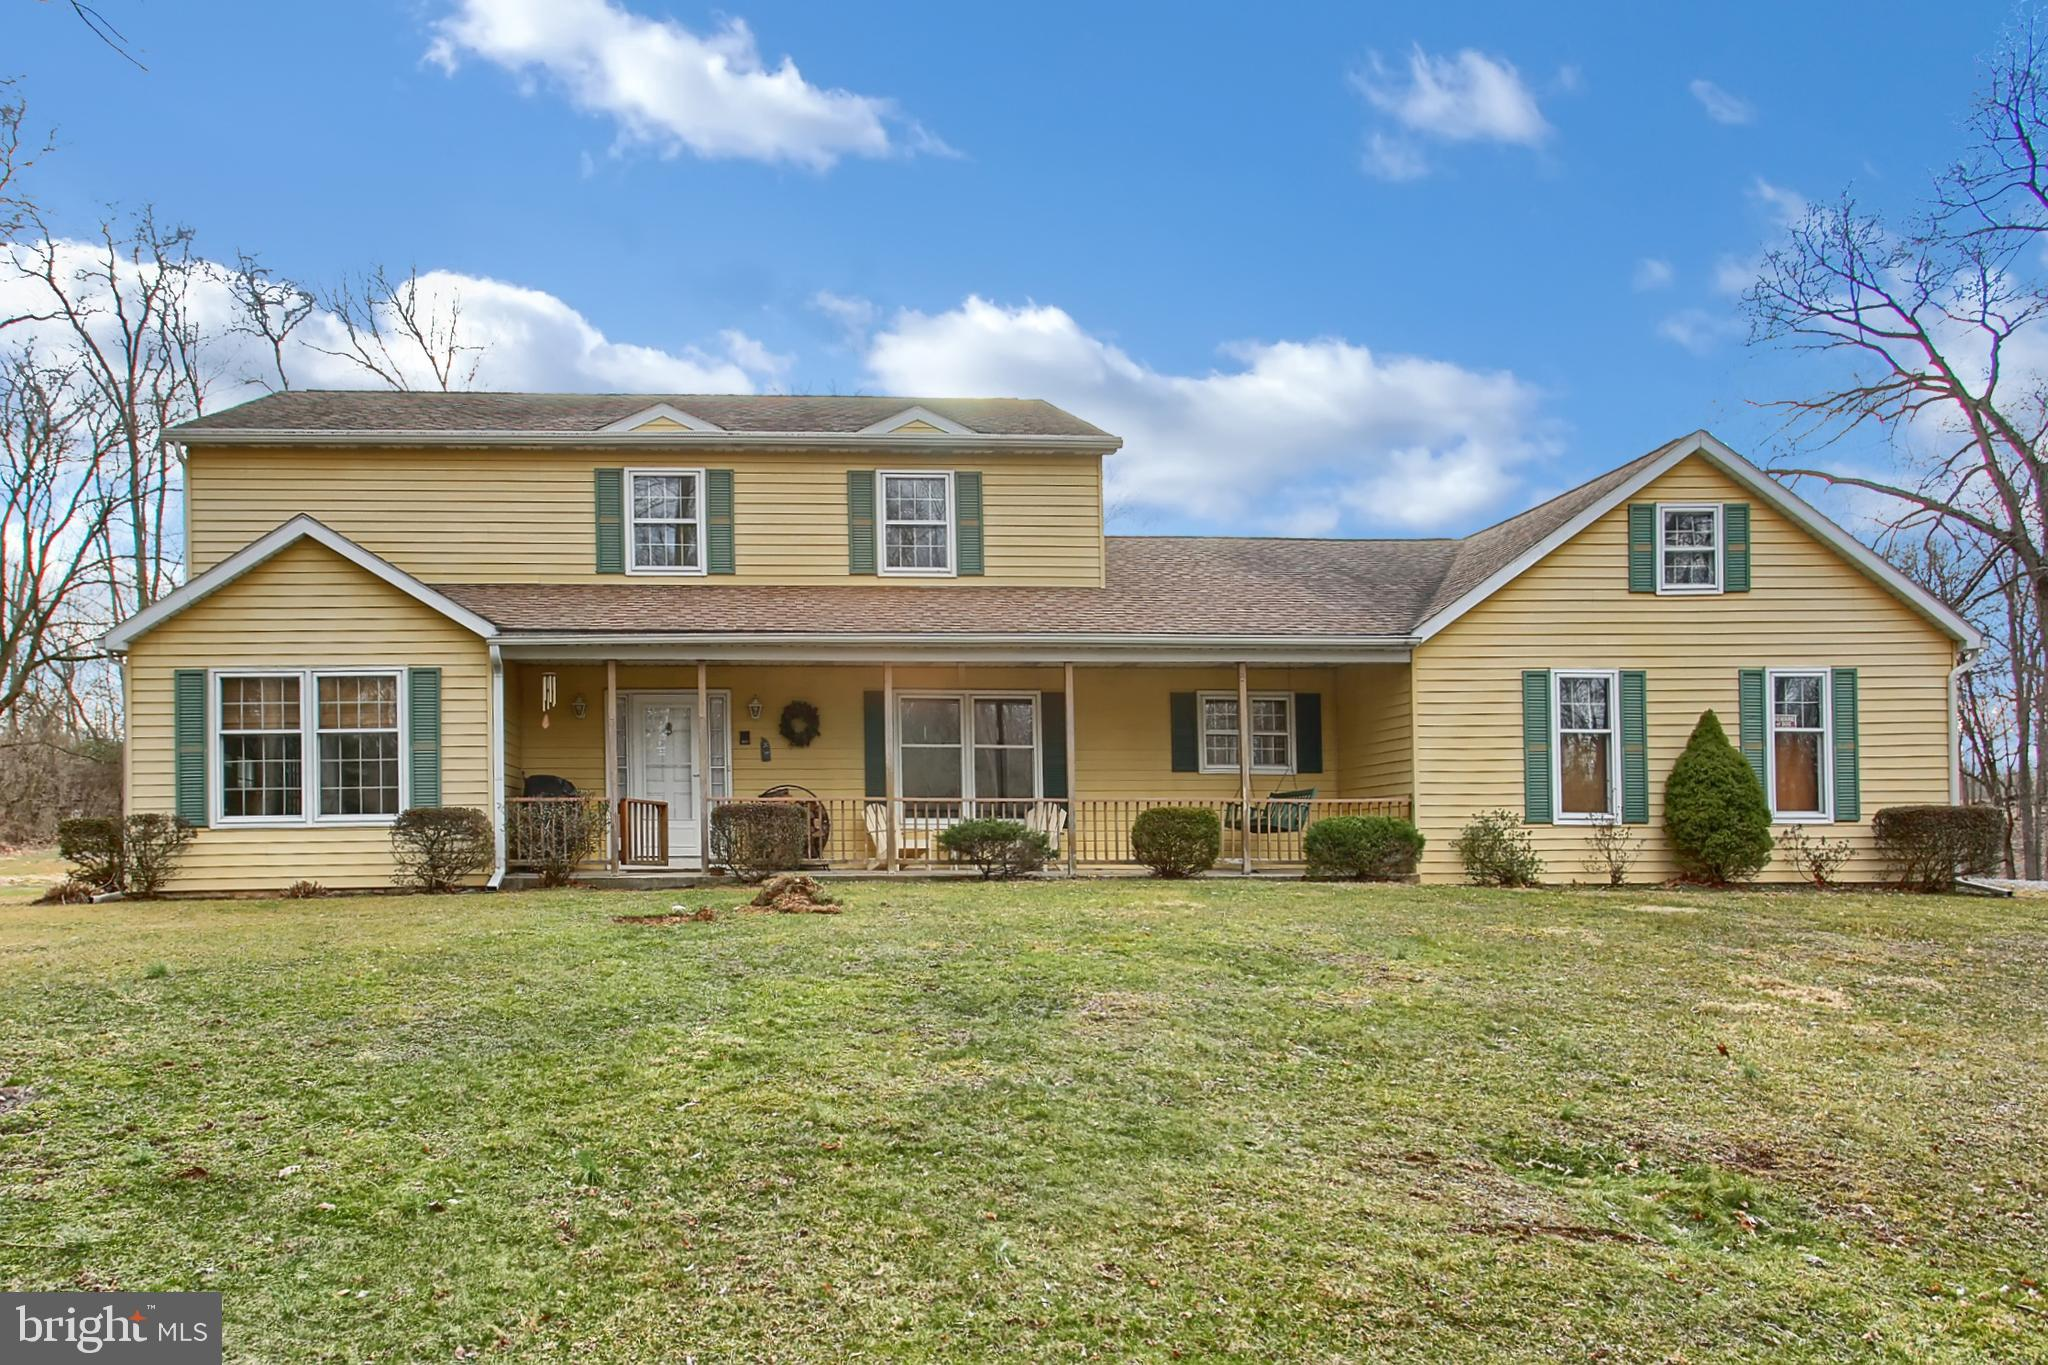 16 Graham Road, Newville, PA 17241